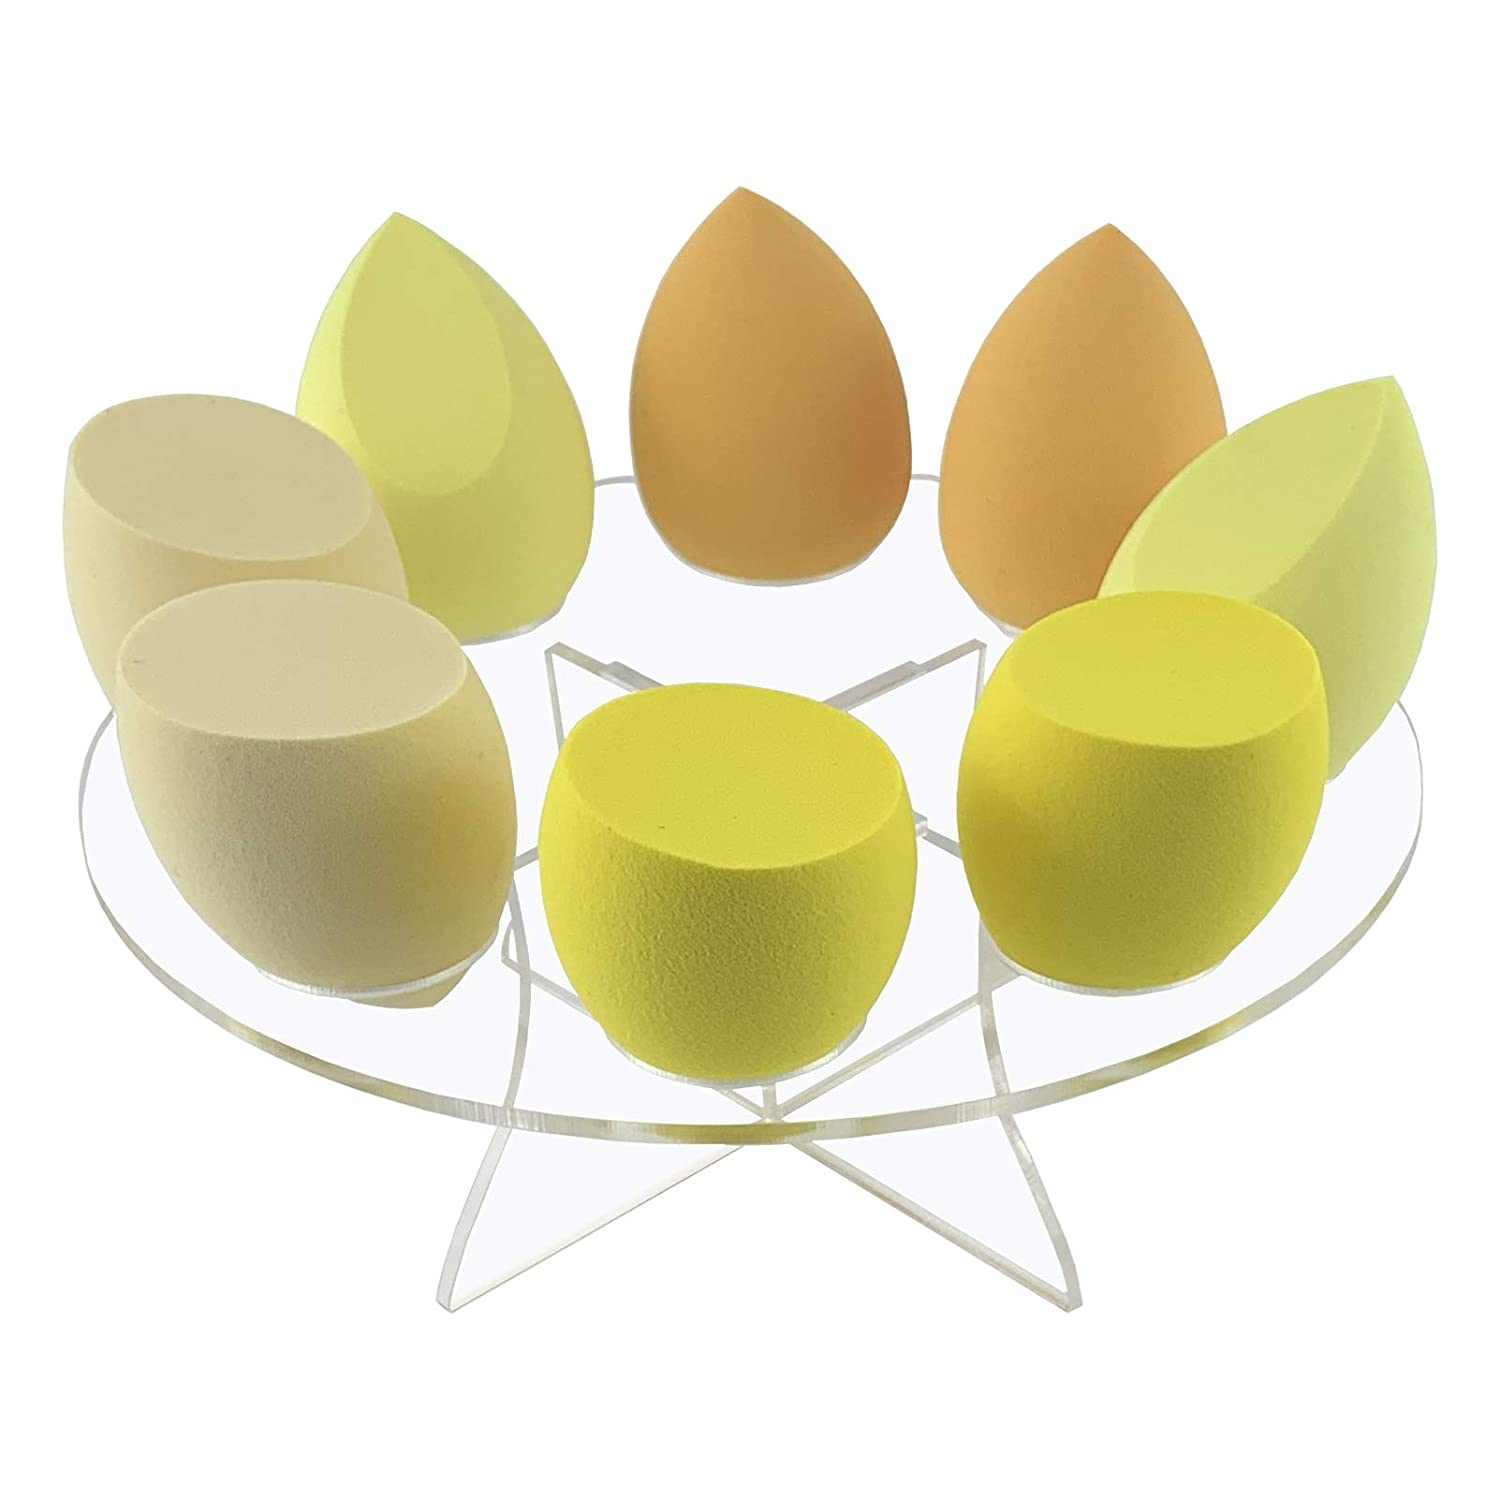 Makeup Sponge Holder, 8 Slots Beauty Blender Drying Organizer Egg Powder Puff Display Stand